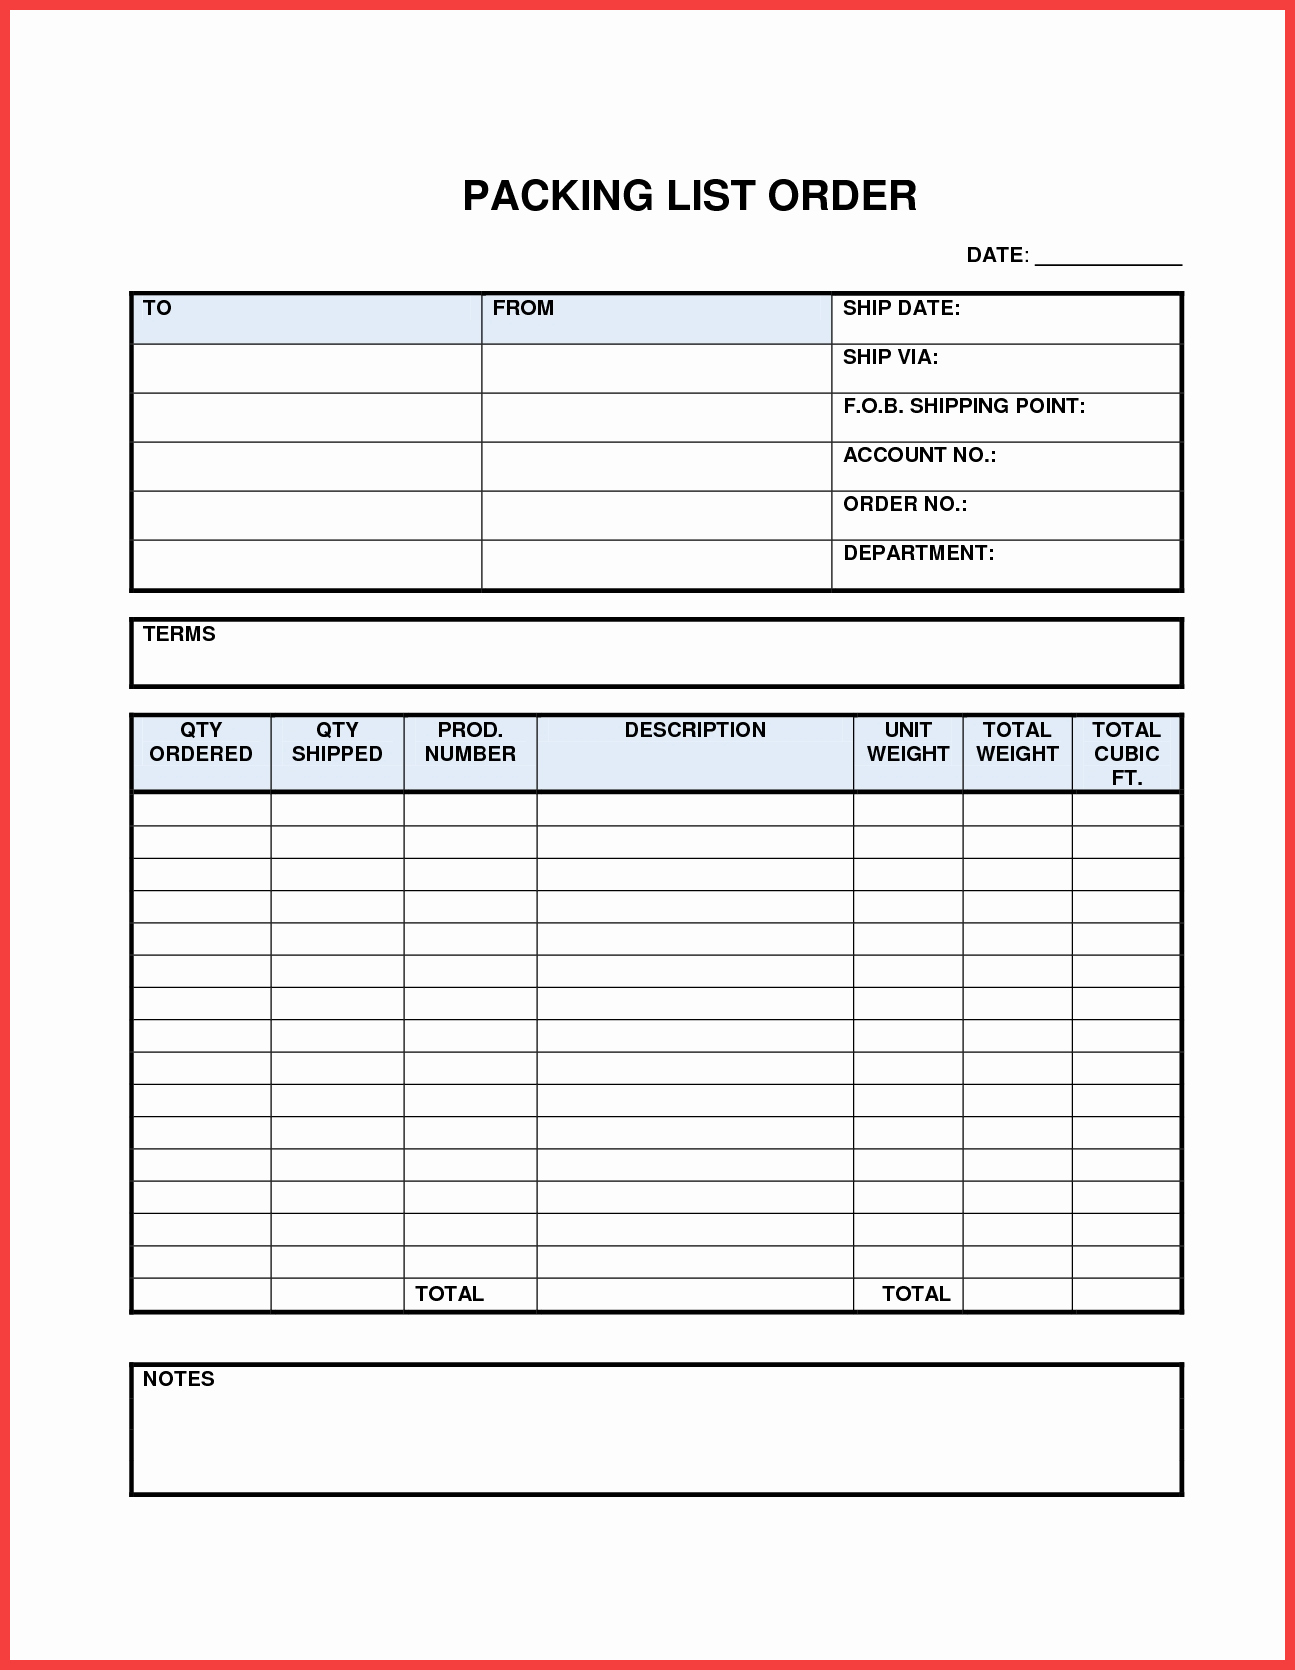 Blank Packing List Template Lovely Packing List Word Template